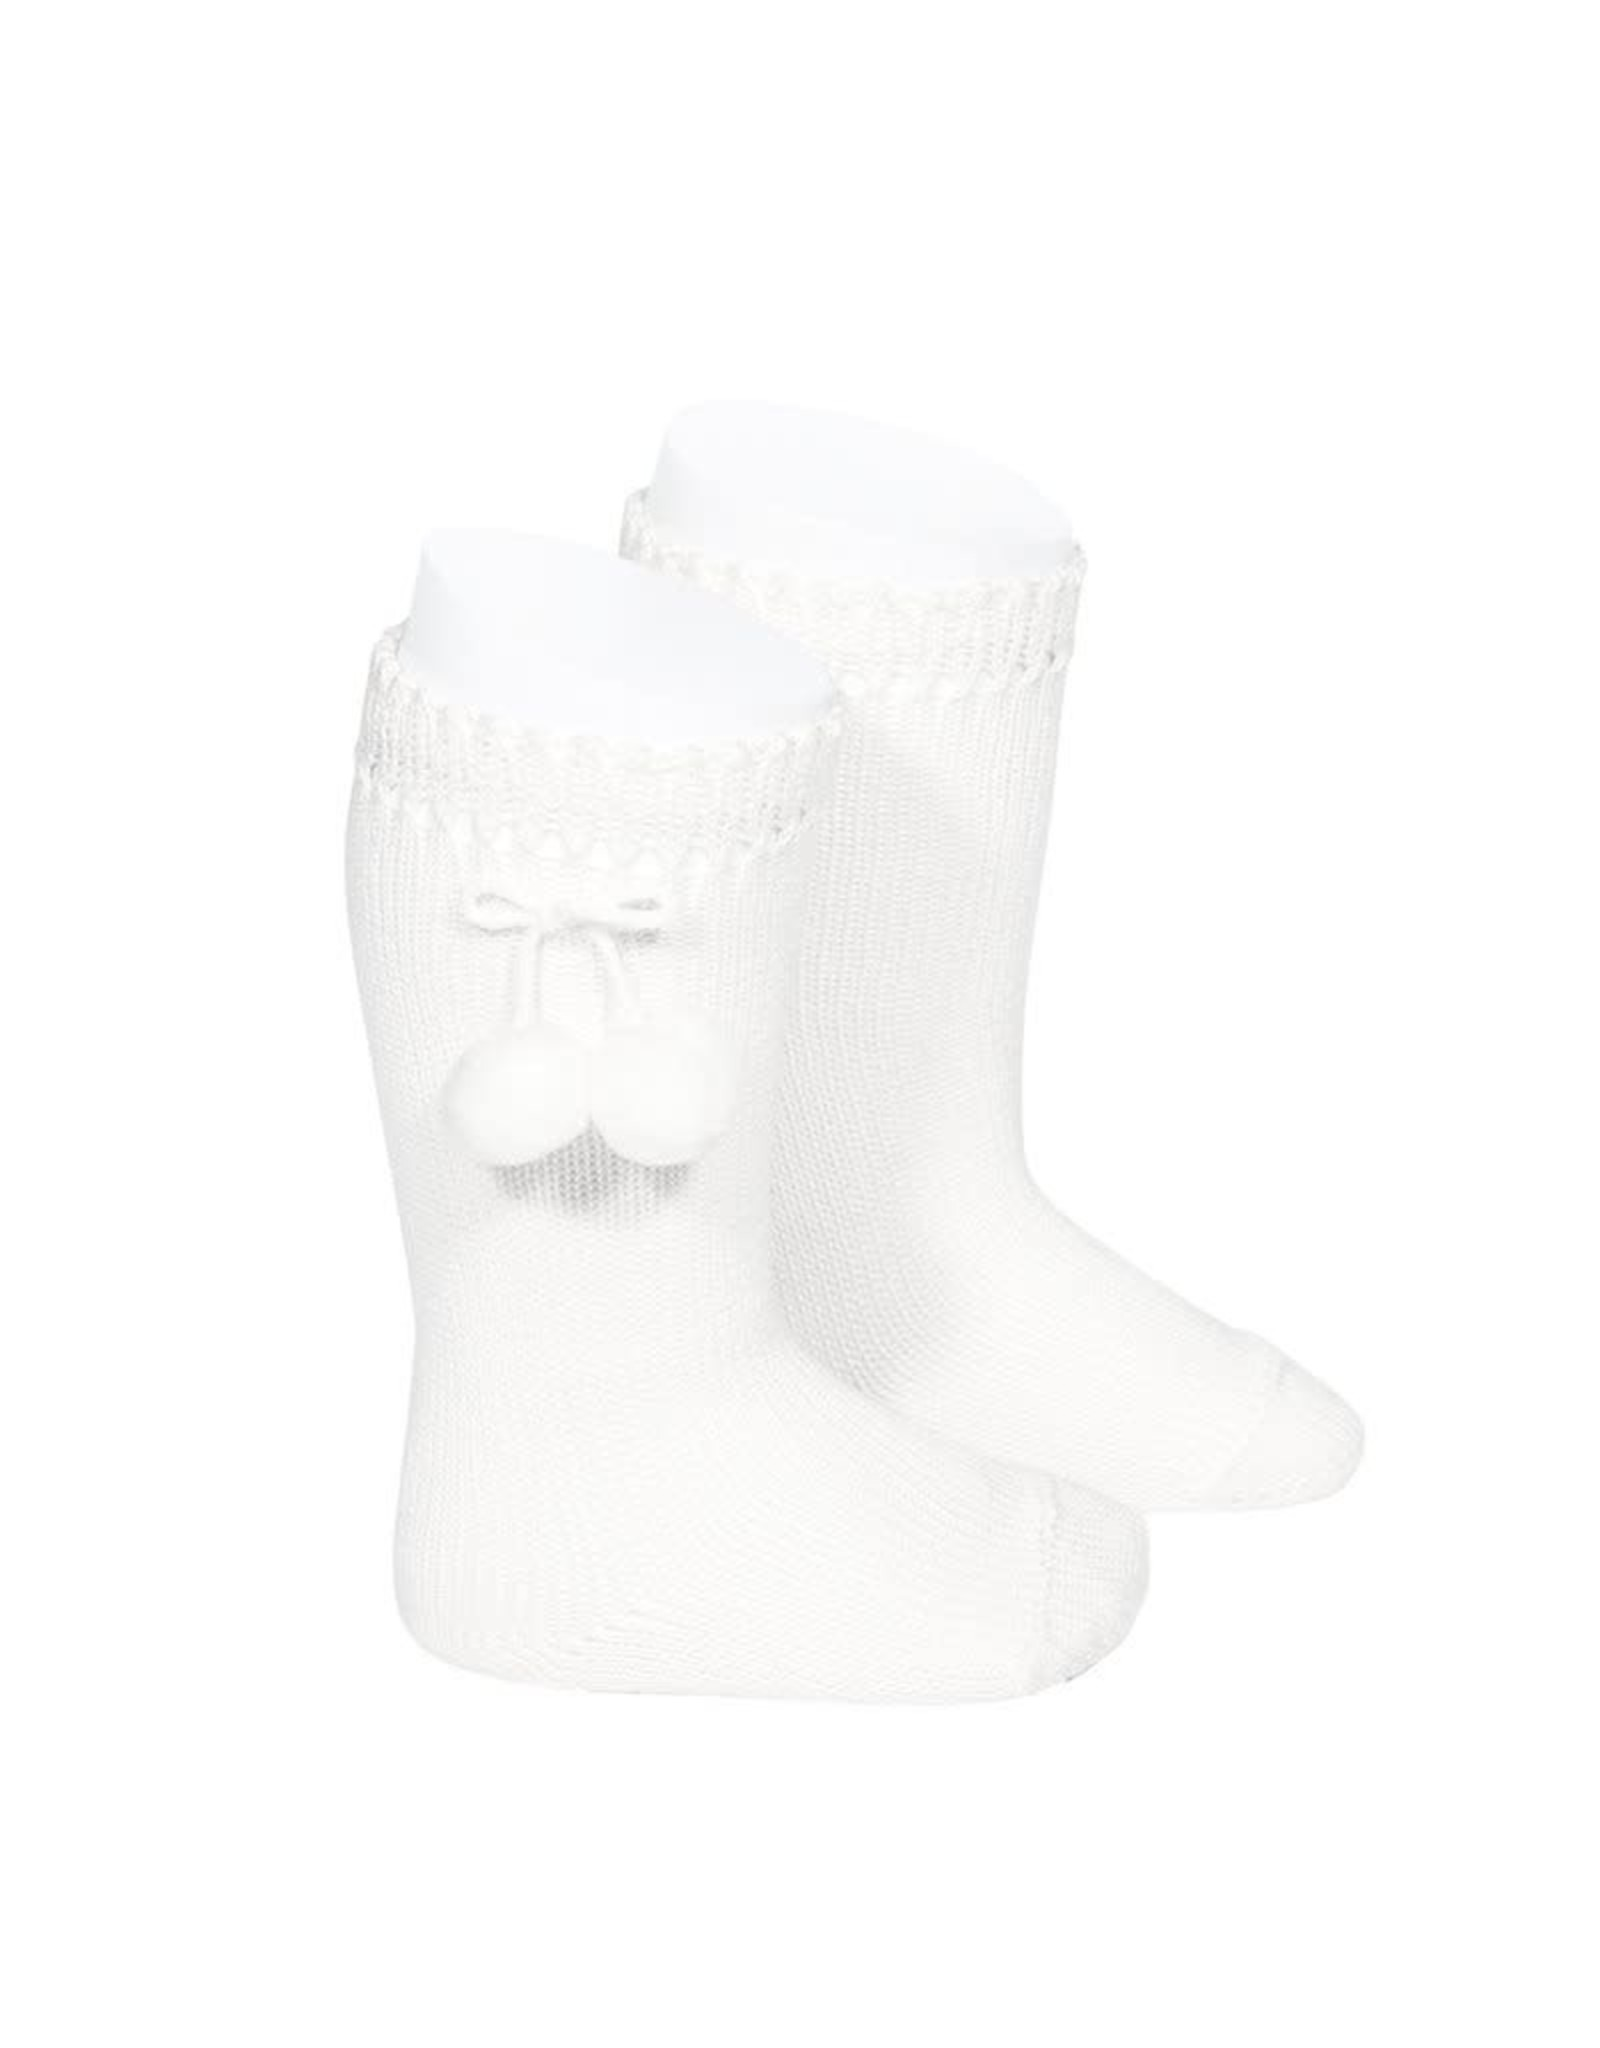 CONDOR White Perle Knee High Socks with PomPoms